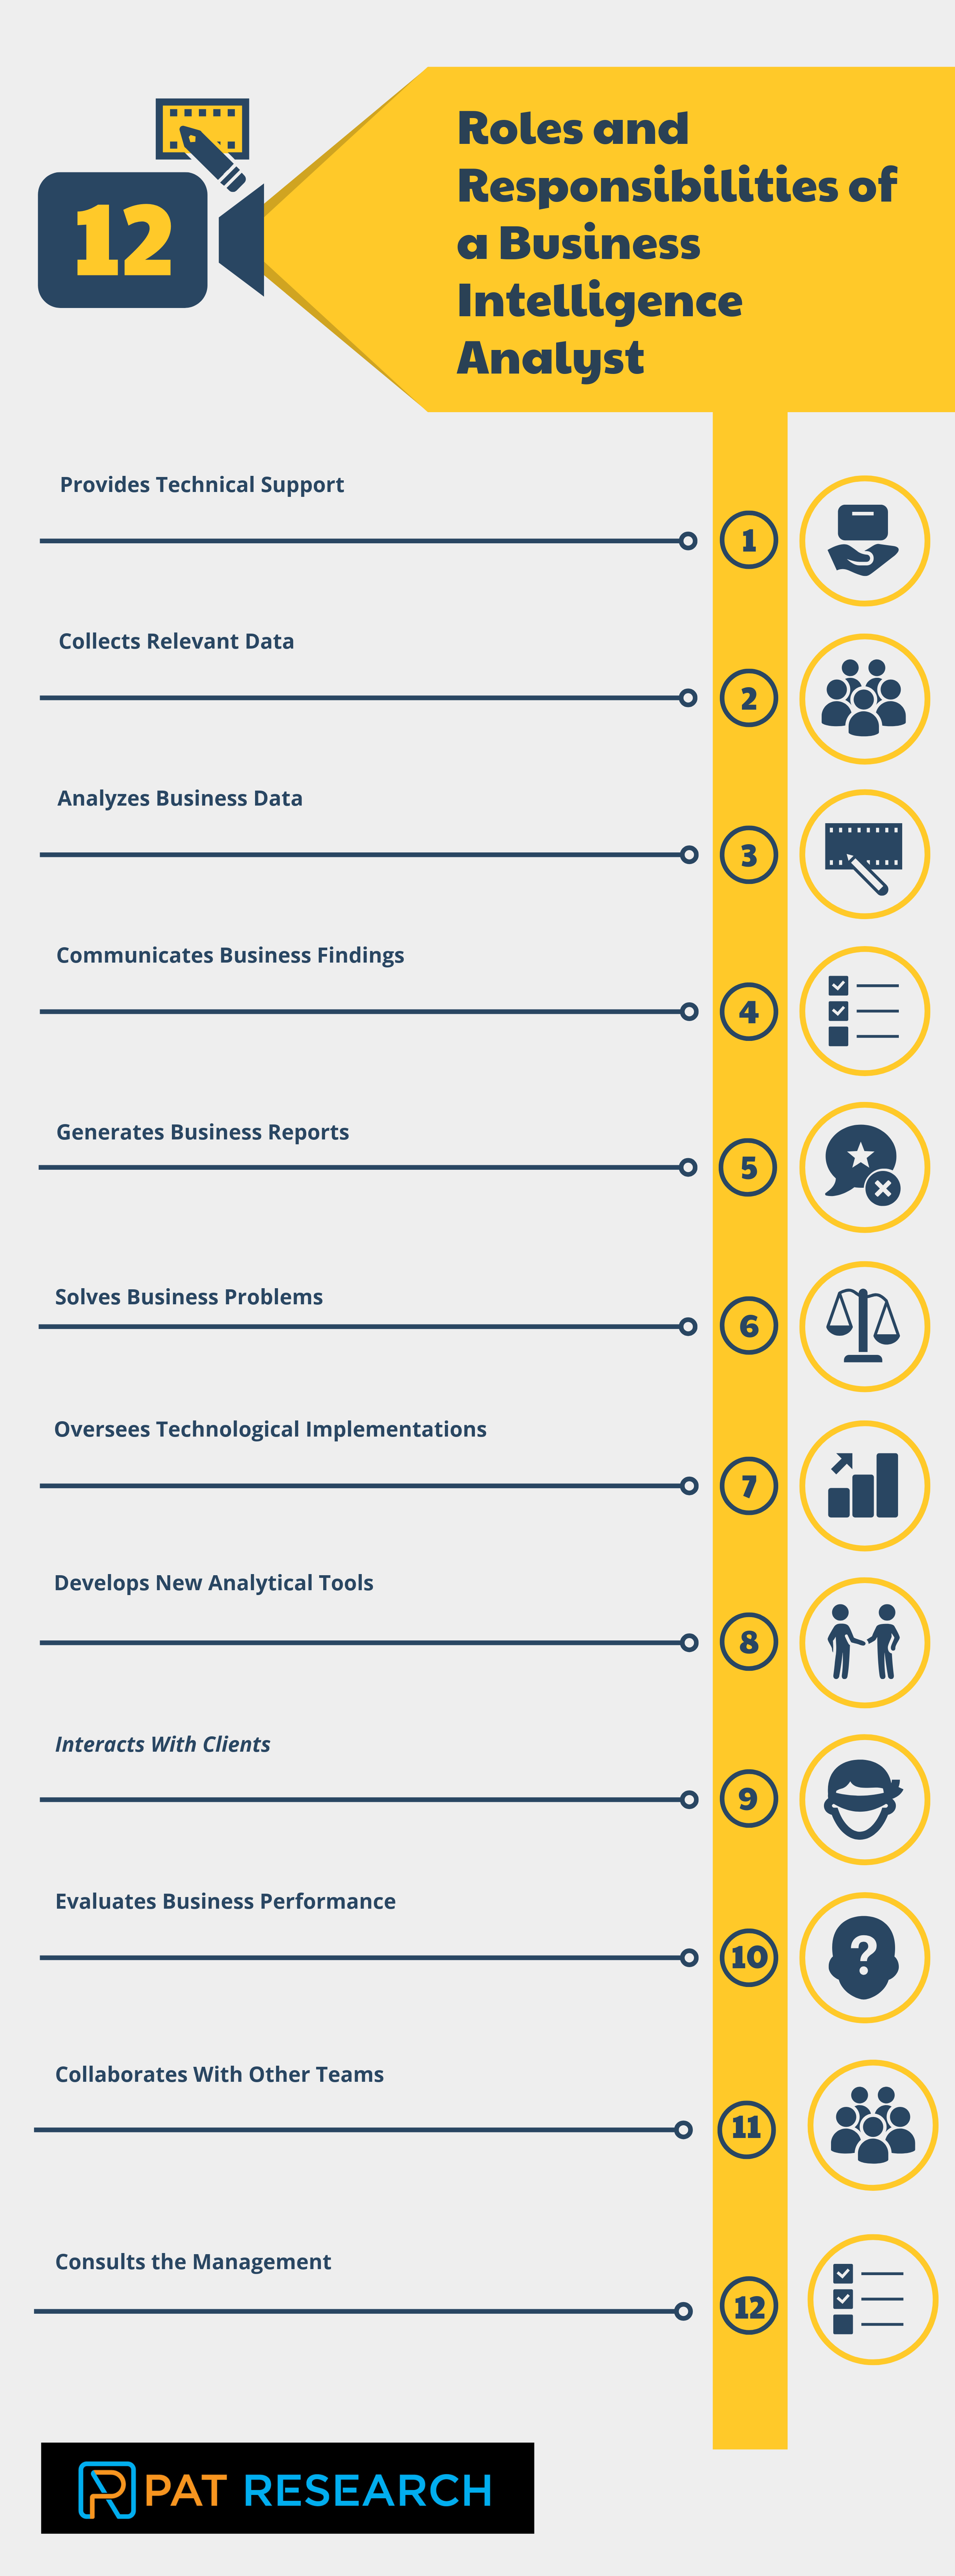 What are the Roles and Responsibilities of a Business Intelligence Analyst